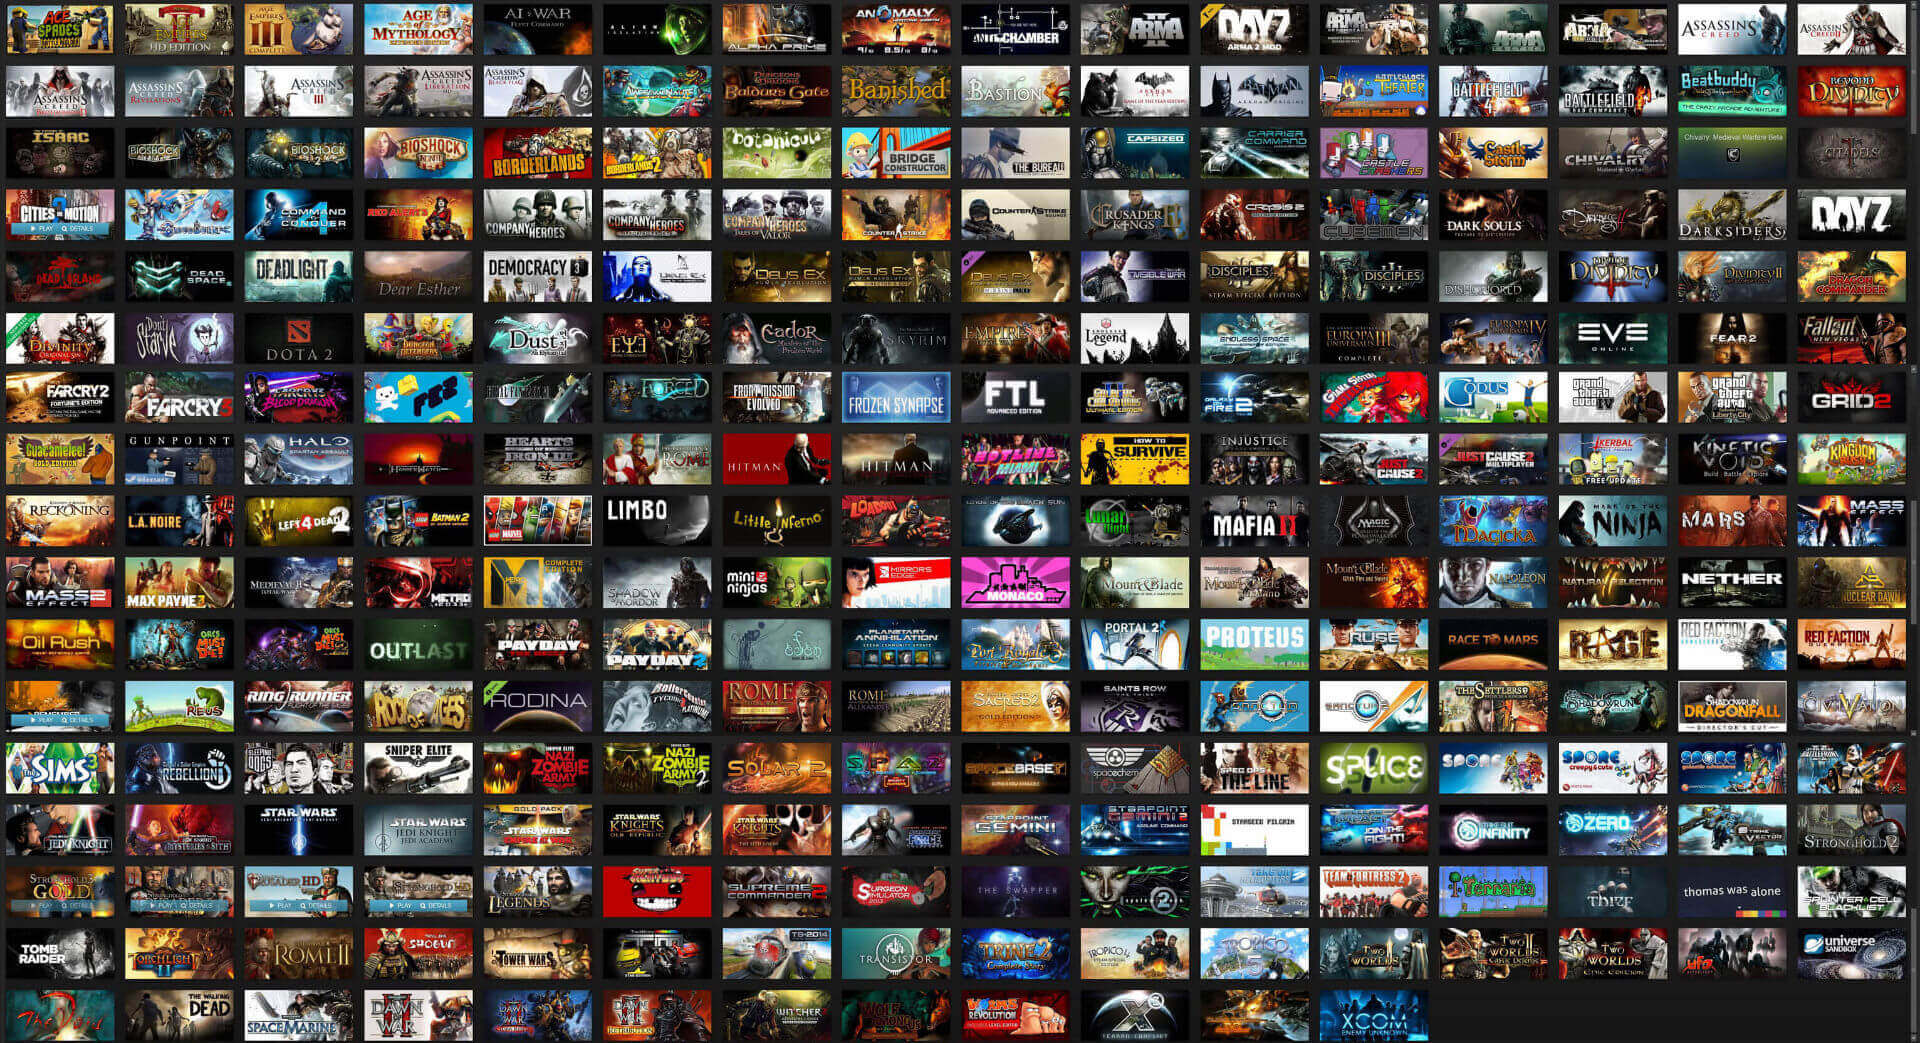 Valve might be working on a cloud gaming service for Steam